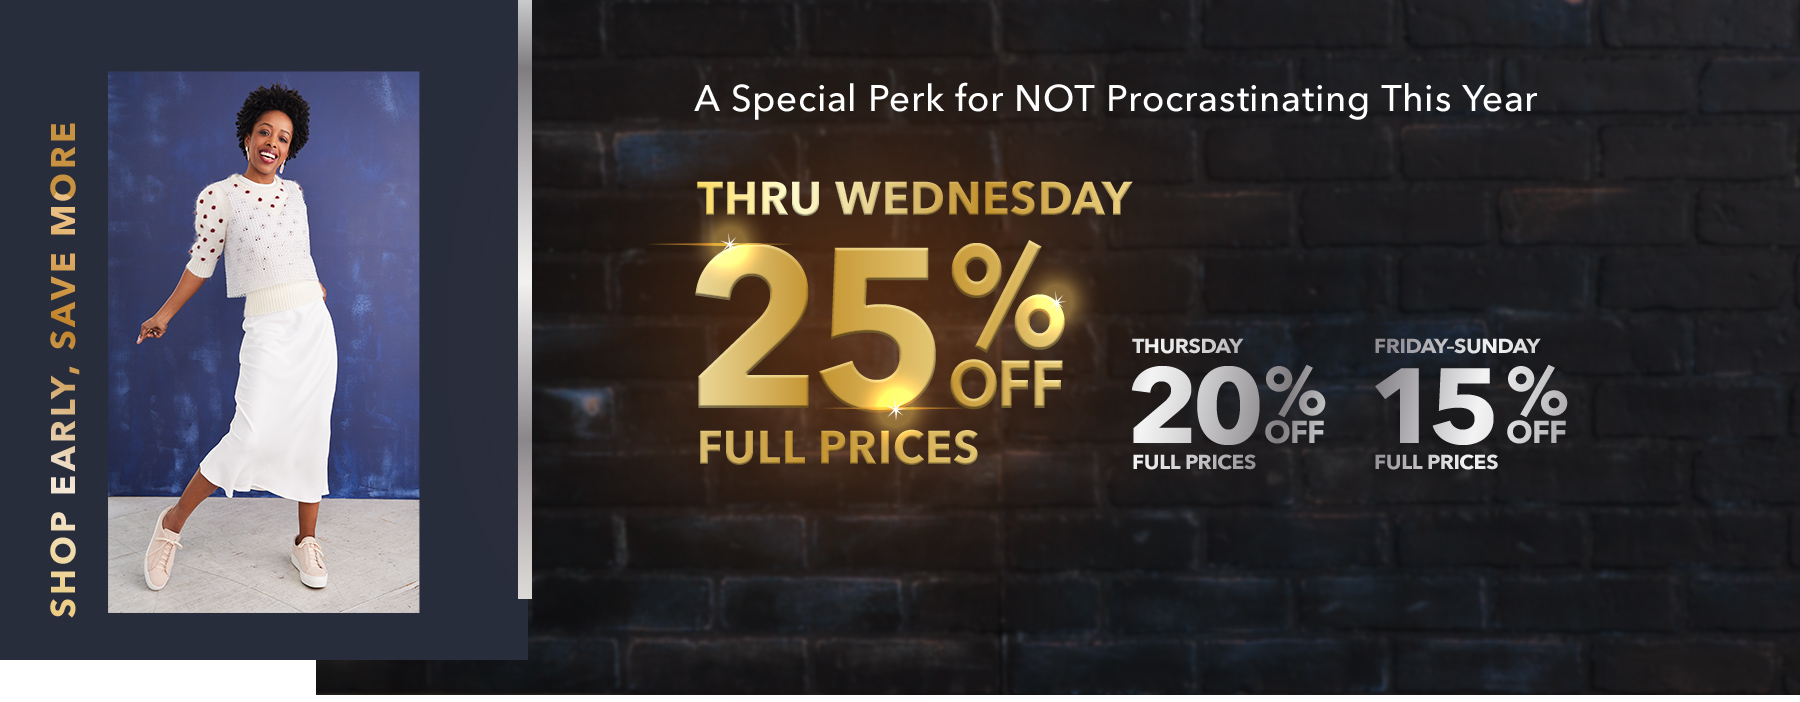 a Special Perk for NOT Procrastinating This Year   Thru Wednesday 12/11 - 25% off full prices